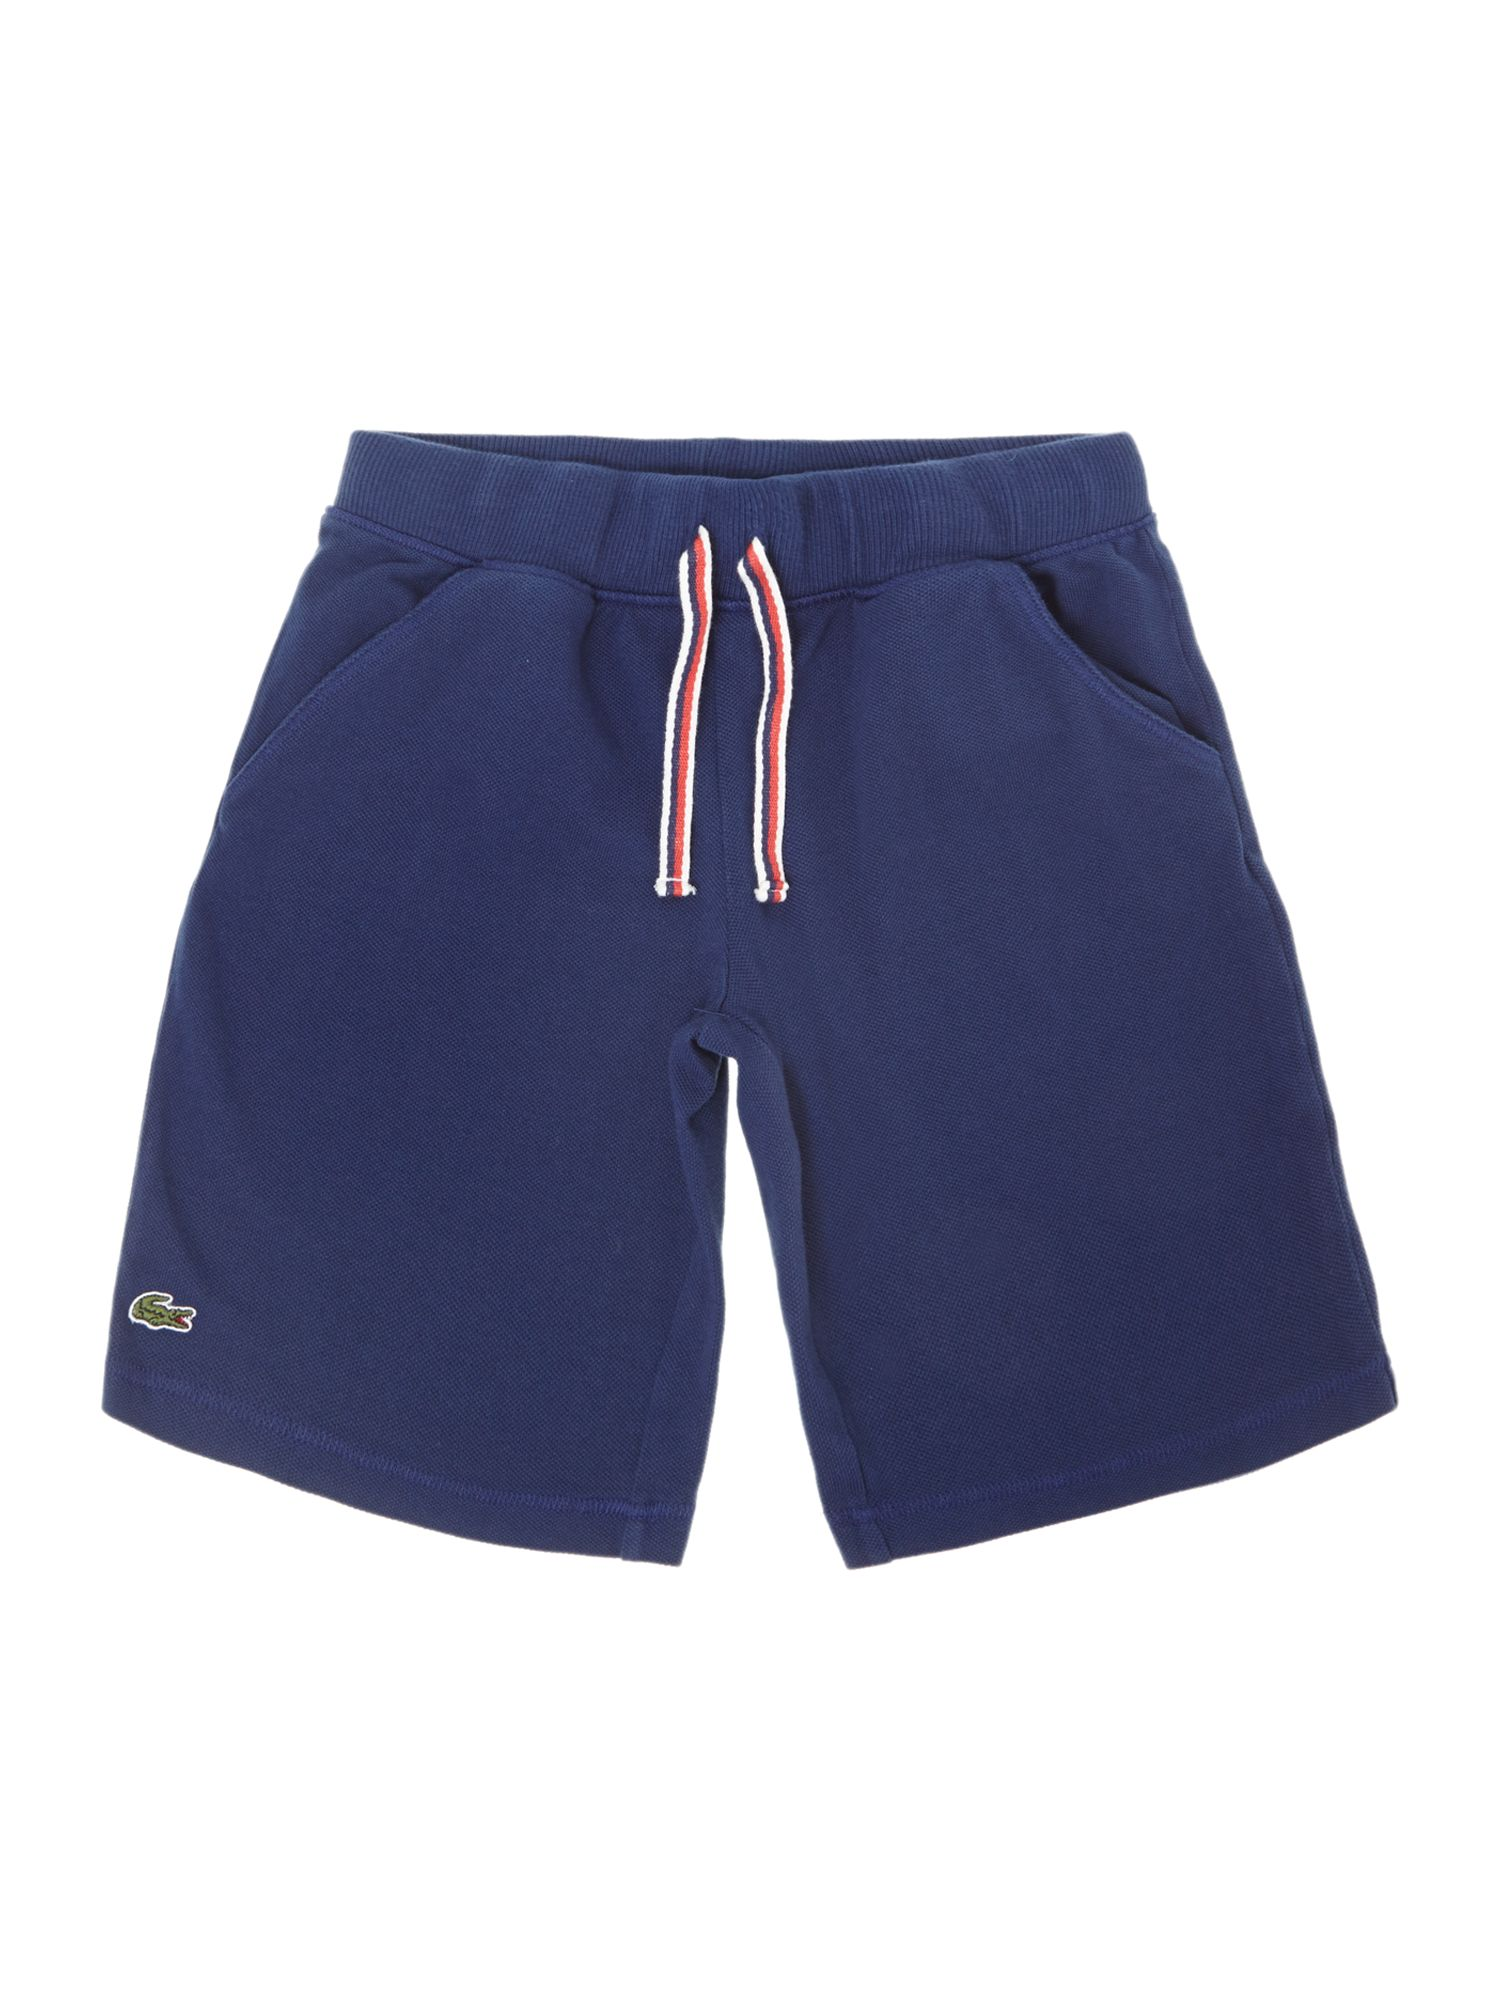 Boys small croc pique short